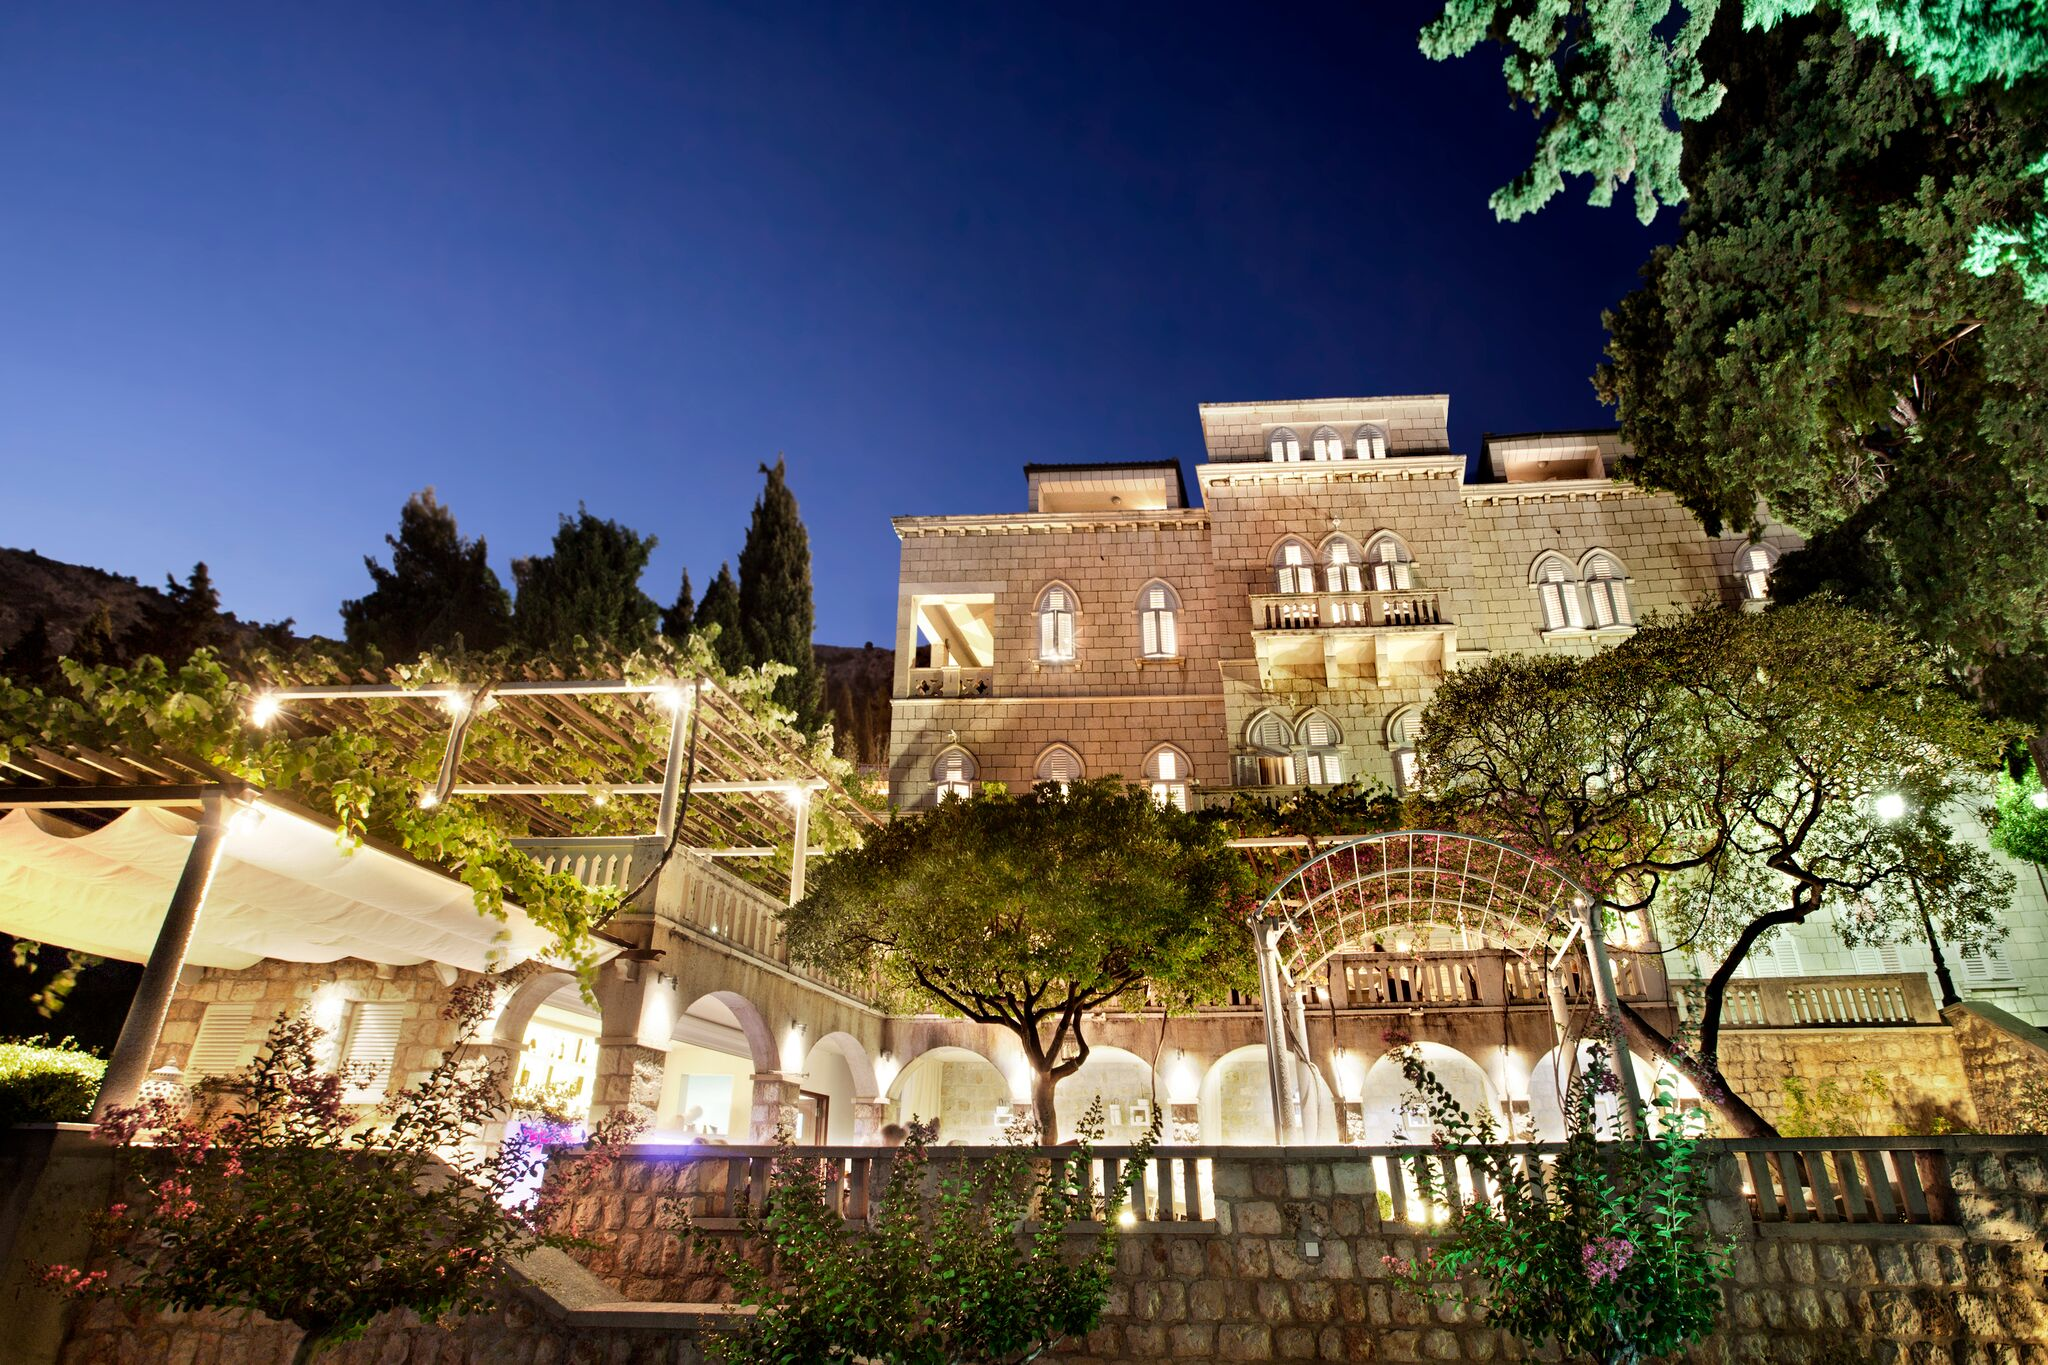 Villa Orsula Dubrovnik - exterior night_preview-1.jpg